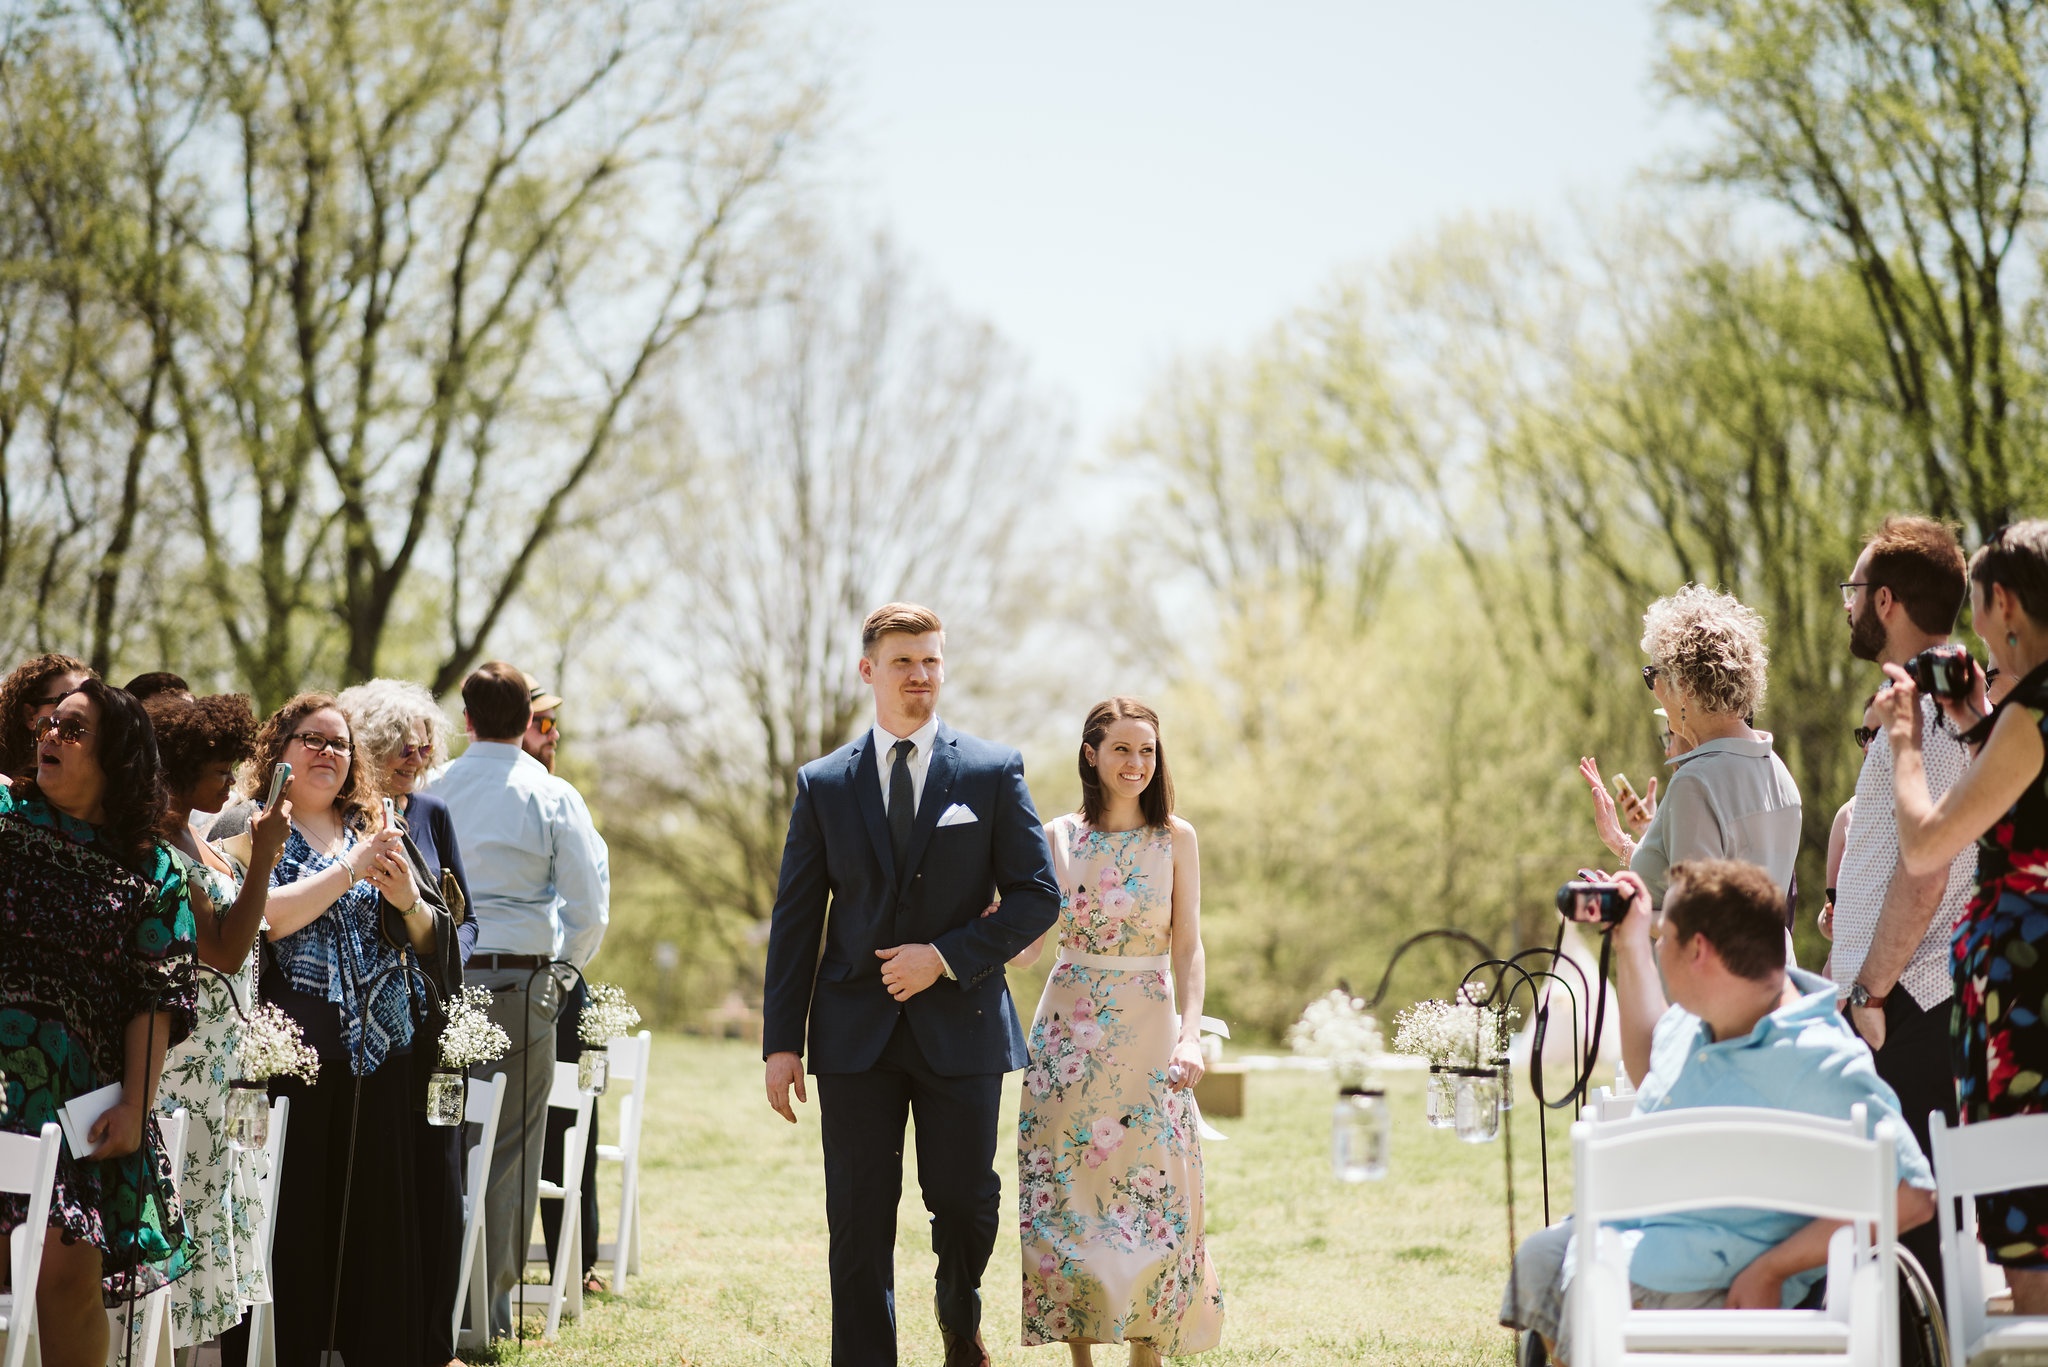 Spring Outdoor Wedding, Park, Baltimore Wedding Photographer, DIY, Classic, Upcycled, Garden Party, Romantic, Wedding Party Walking Down the Aisle, Sunny Day